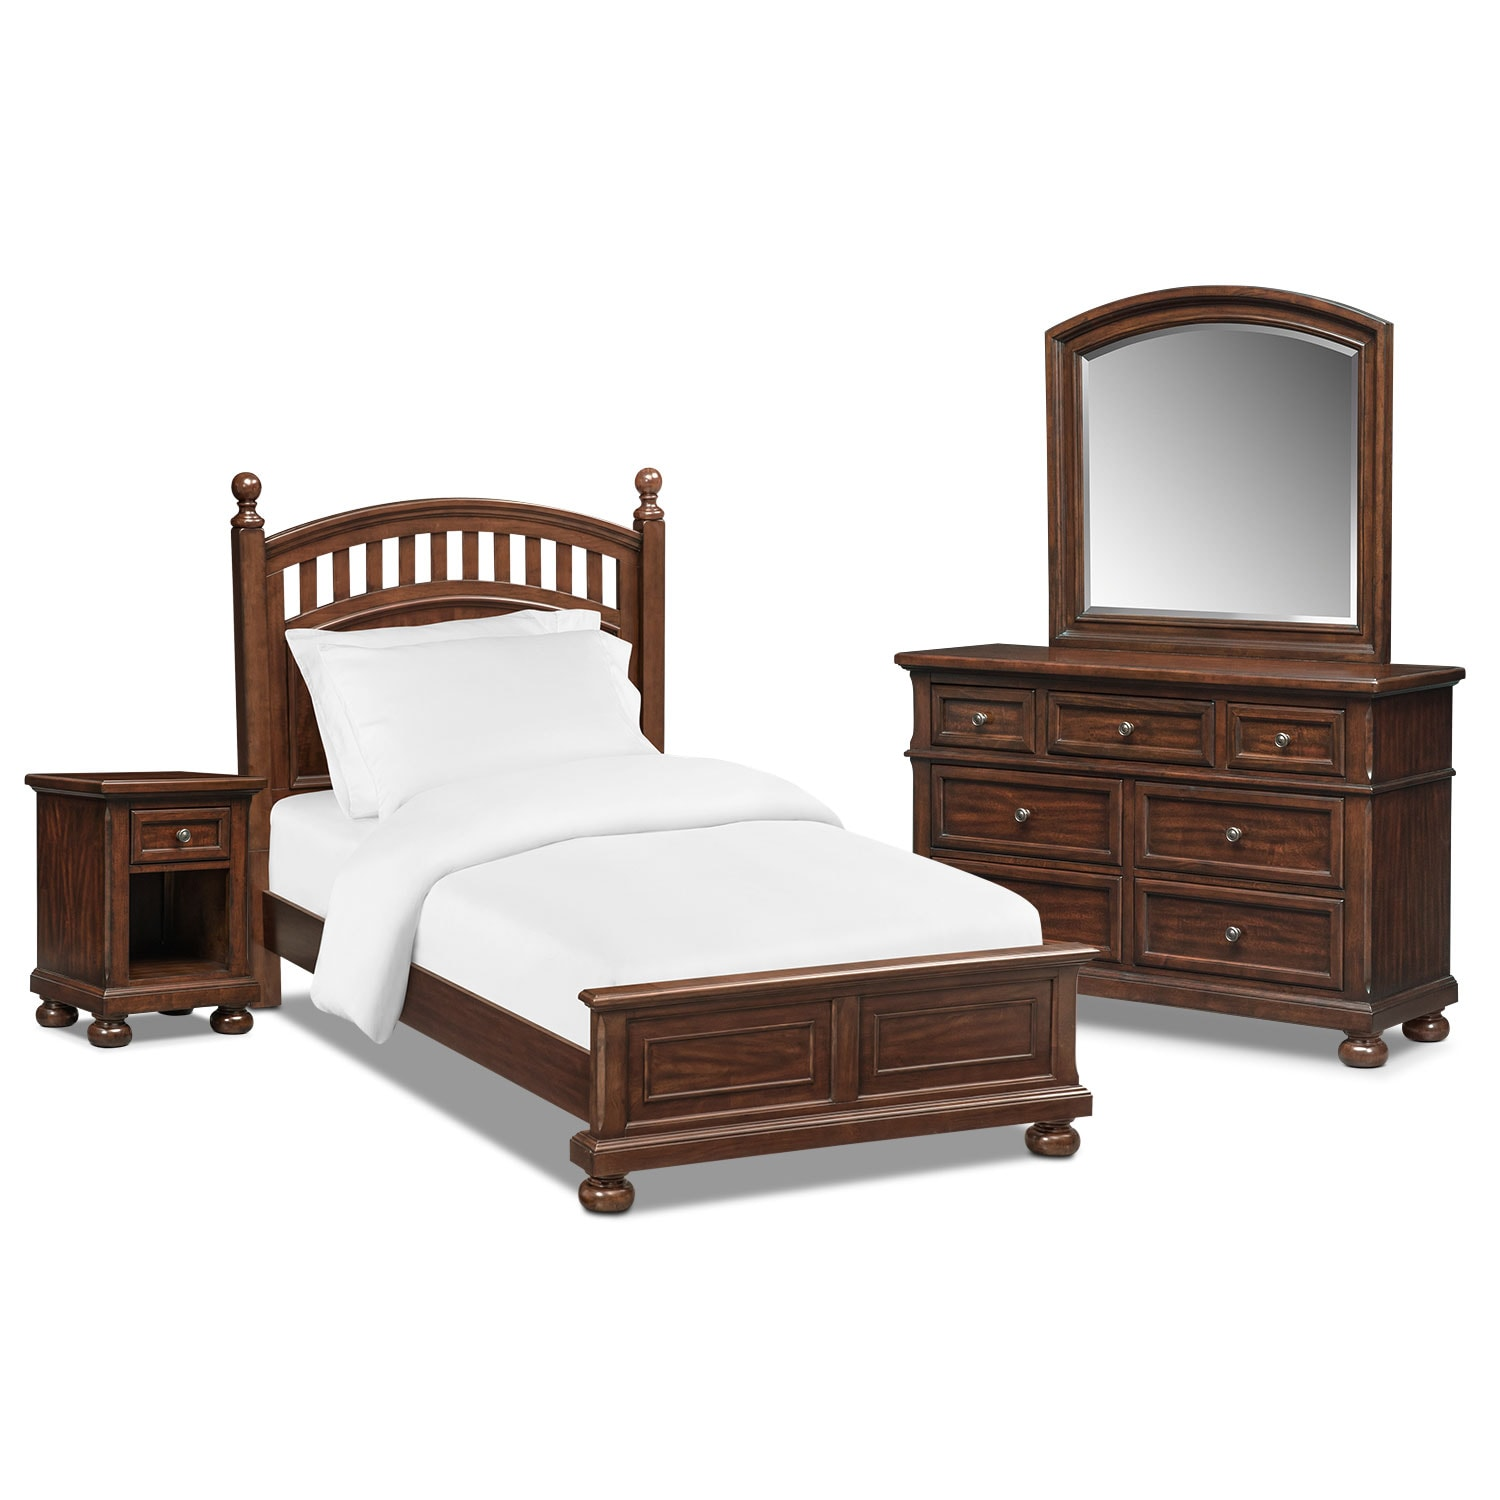 Hanover Youth 6-Piece Twin Poster Bedroom Set - Cherry